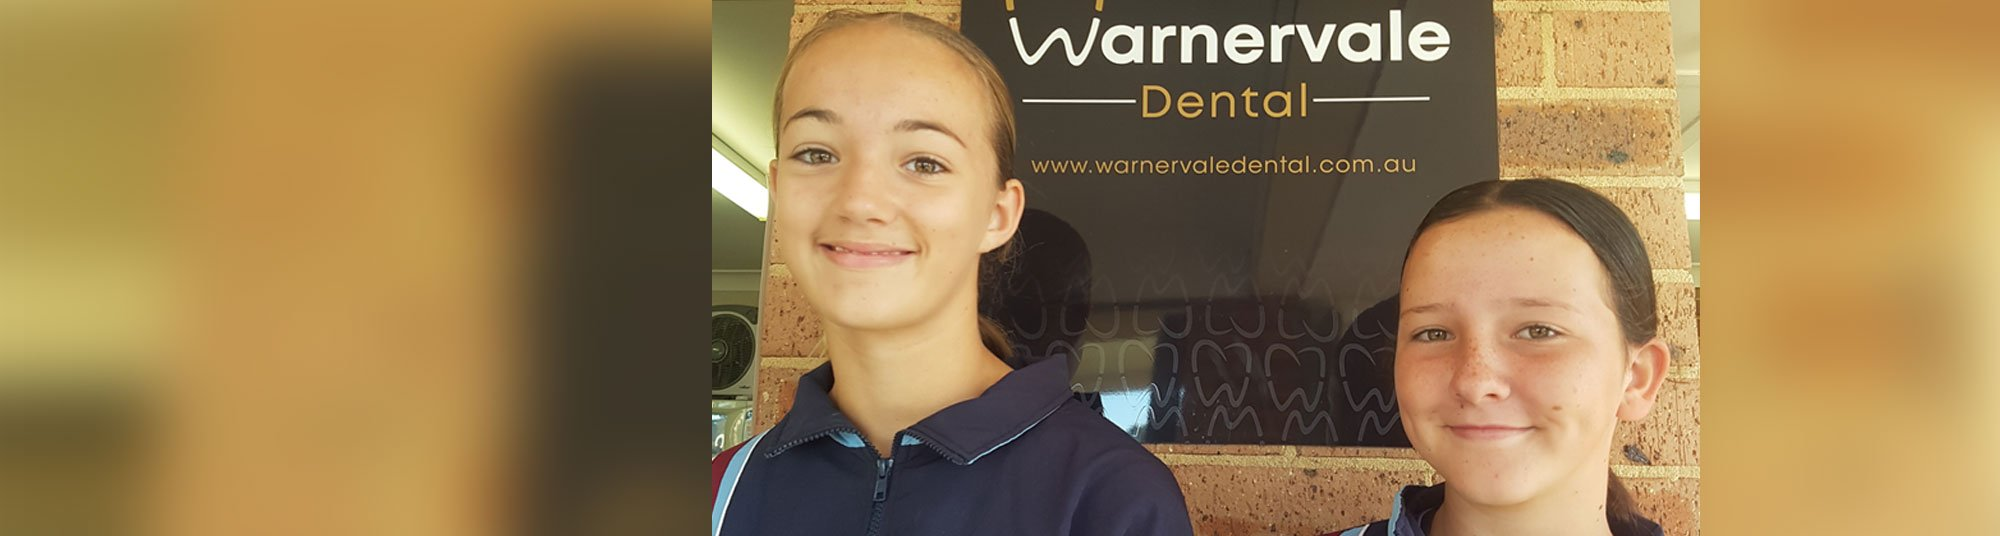 Warnervale Dental supporting local sport